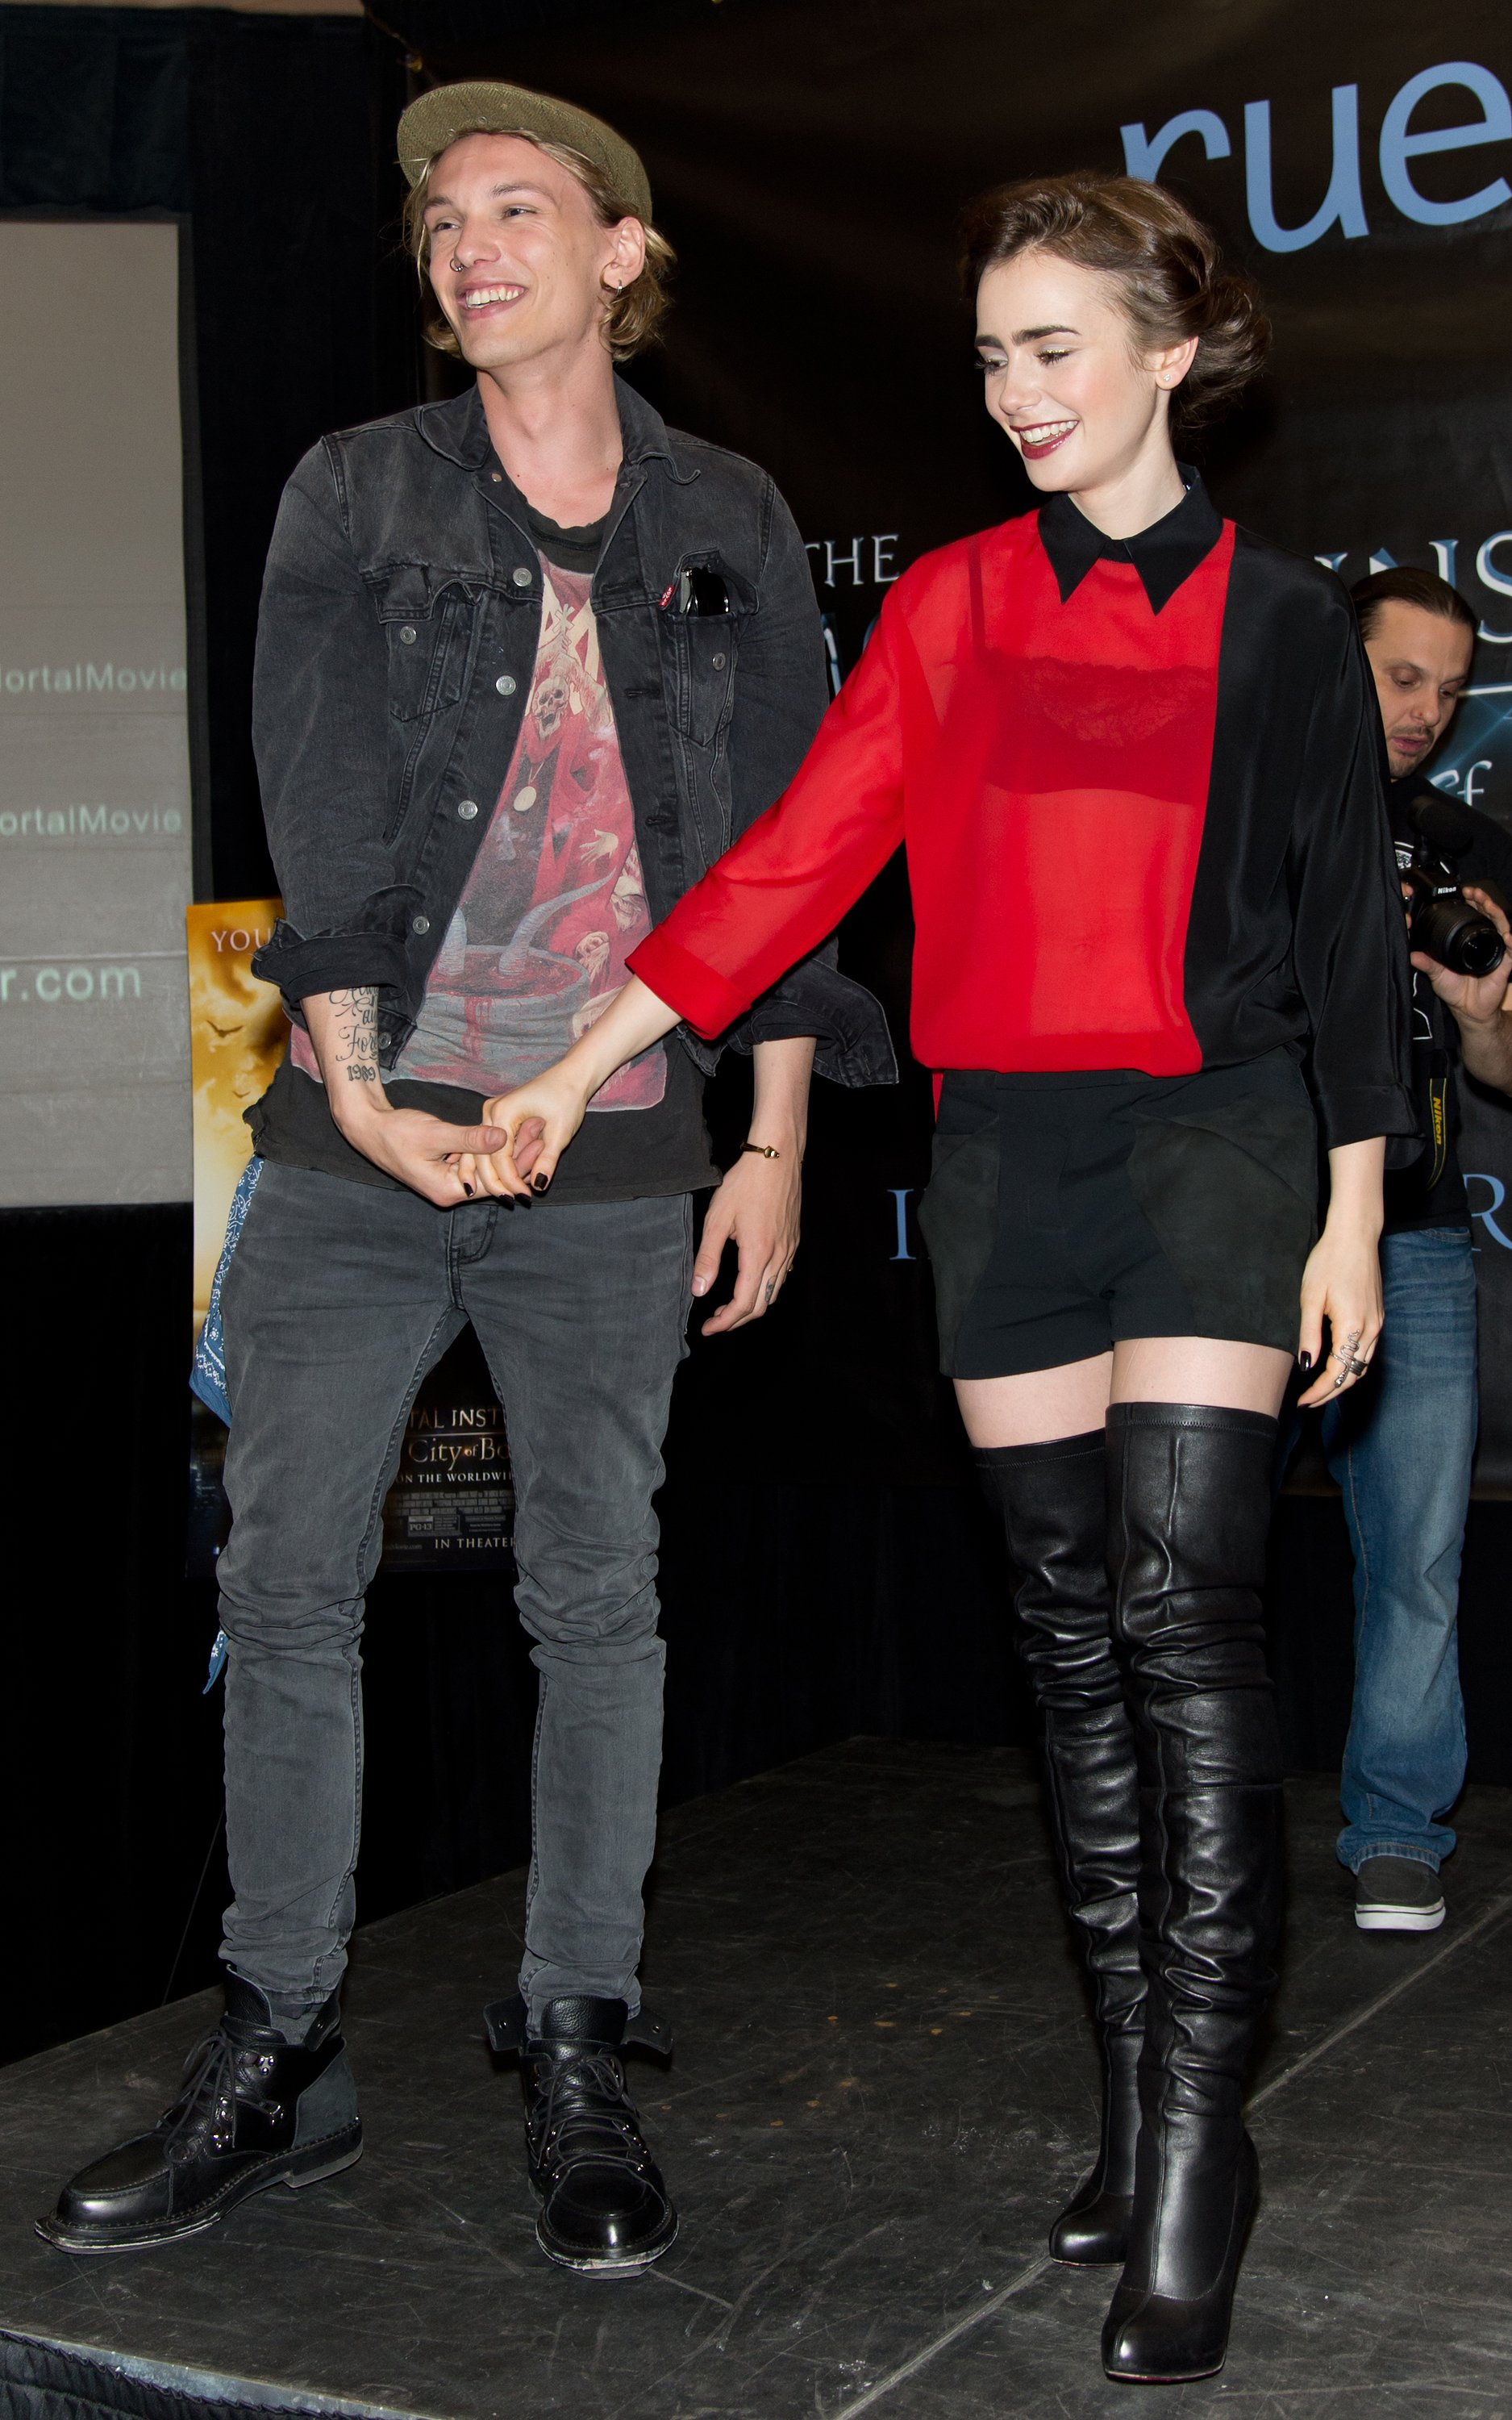 Lily Collins paired her black OTK's with a mini and a colorblocked oversized top